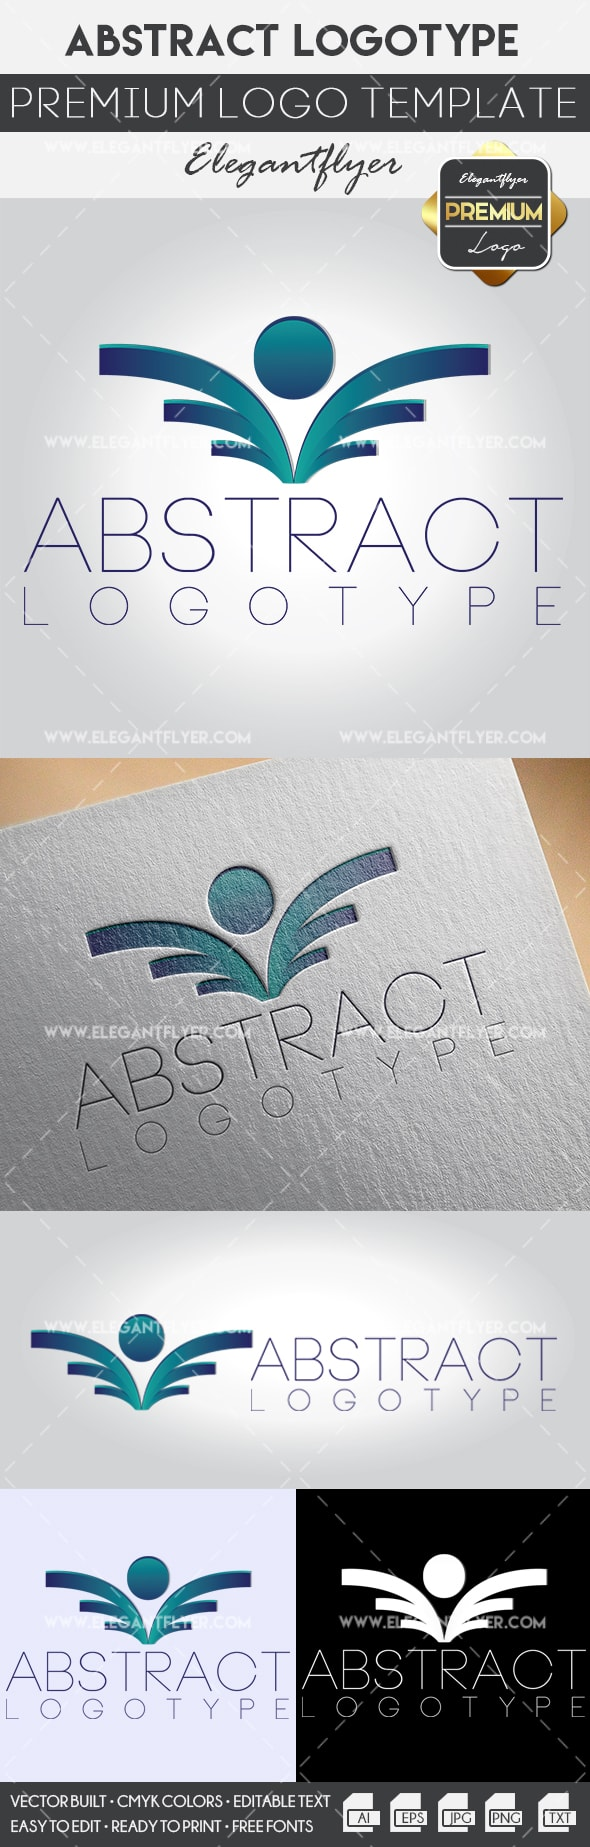 Template Abstract Logo for Printable